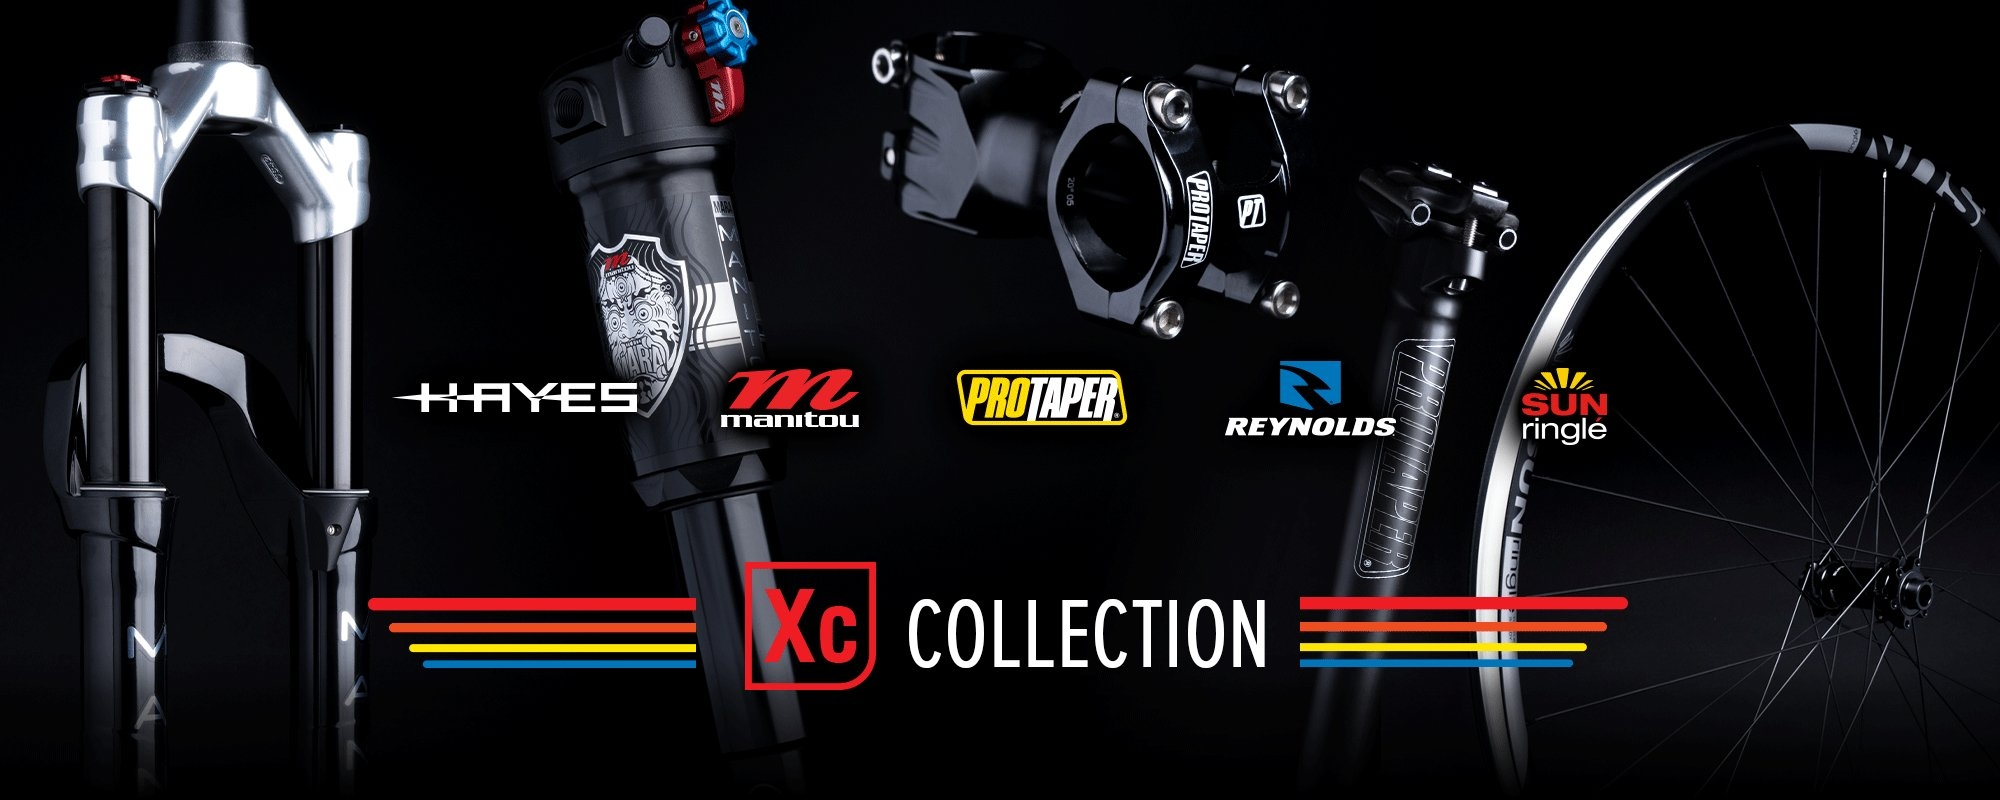 XC Collection